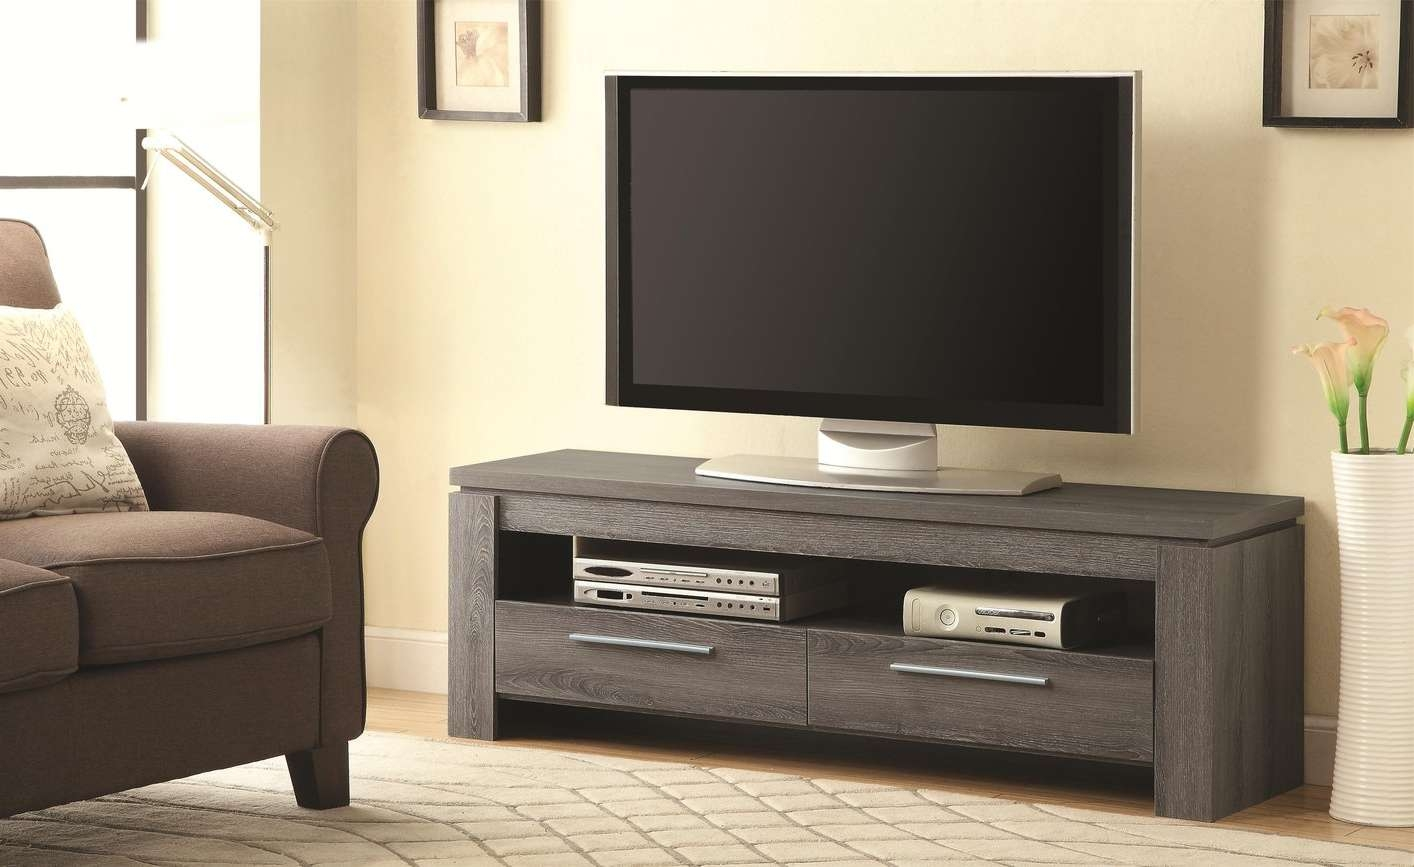 Grey Wood Tv Stand – Steal A Sofa Furniture Outlet Los Angeles Ca Within Wooden Tv Cabinets (Gallery 11 of 20)